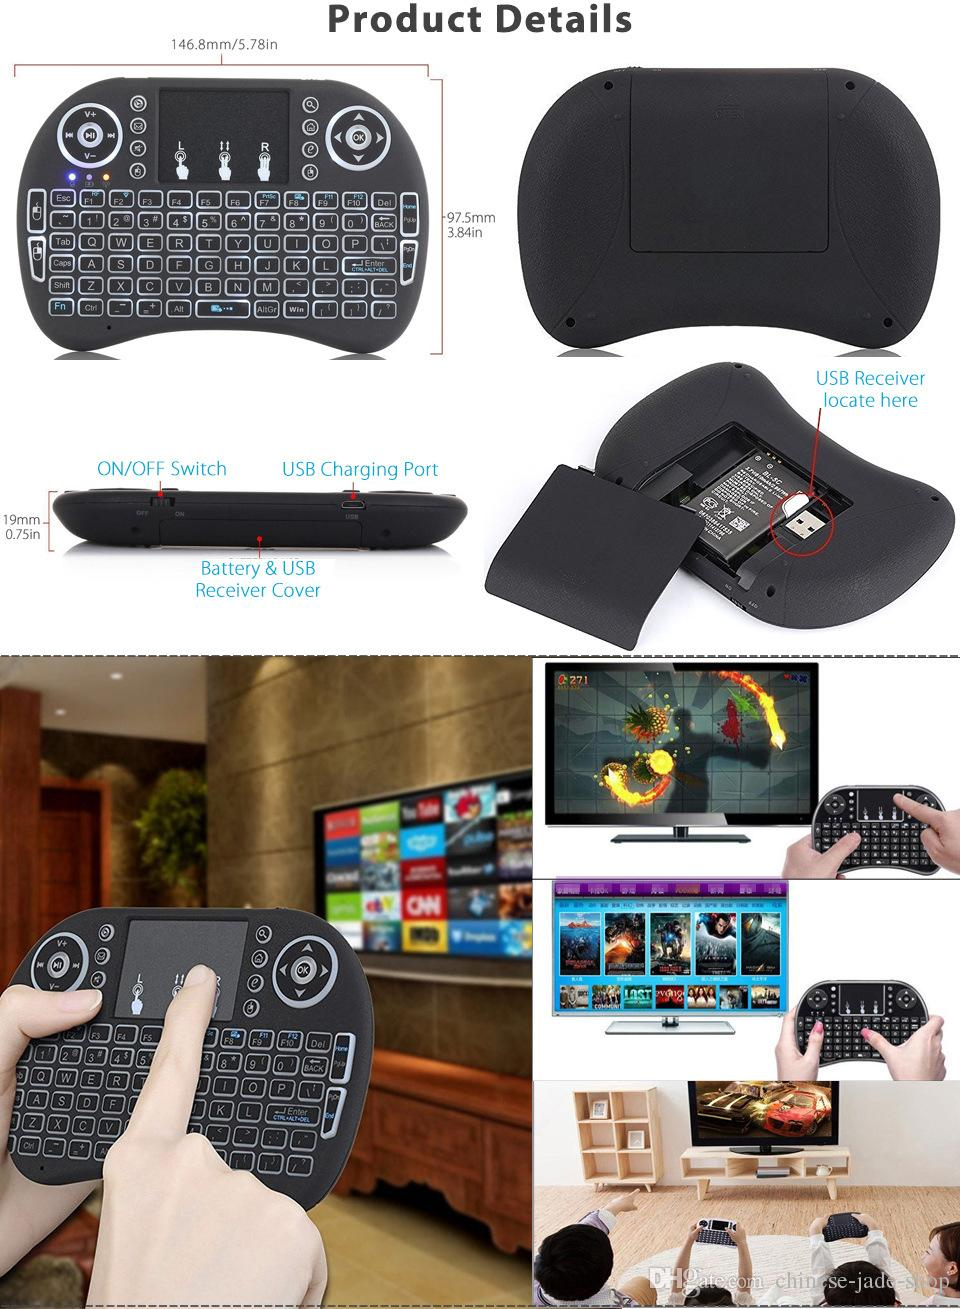 Mini Rii i8 Wireless Keyboard 2.4G Air Maus Hintergrundbeleuchtung Mit Hintergrundbeleuchtung Fernbedienung Touchpad für Smart Android 50 TEILE / LOS